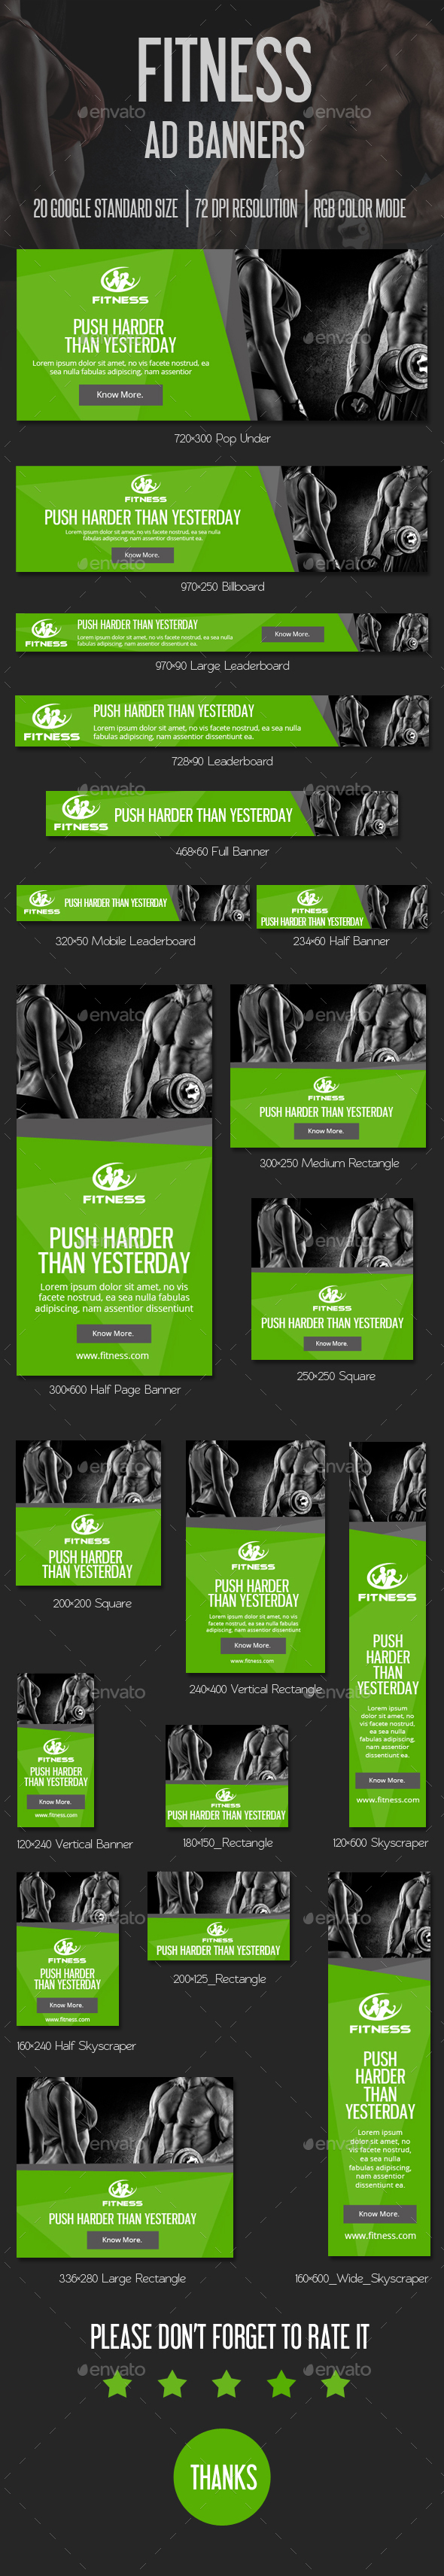 Fitness Banner Ads - Banners & Ads Web Elements